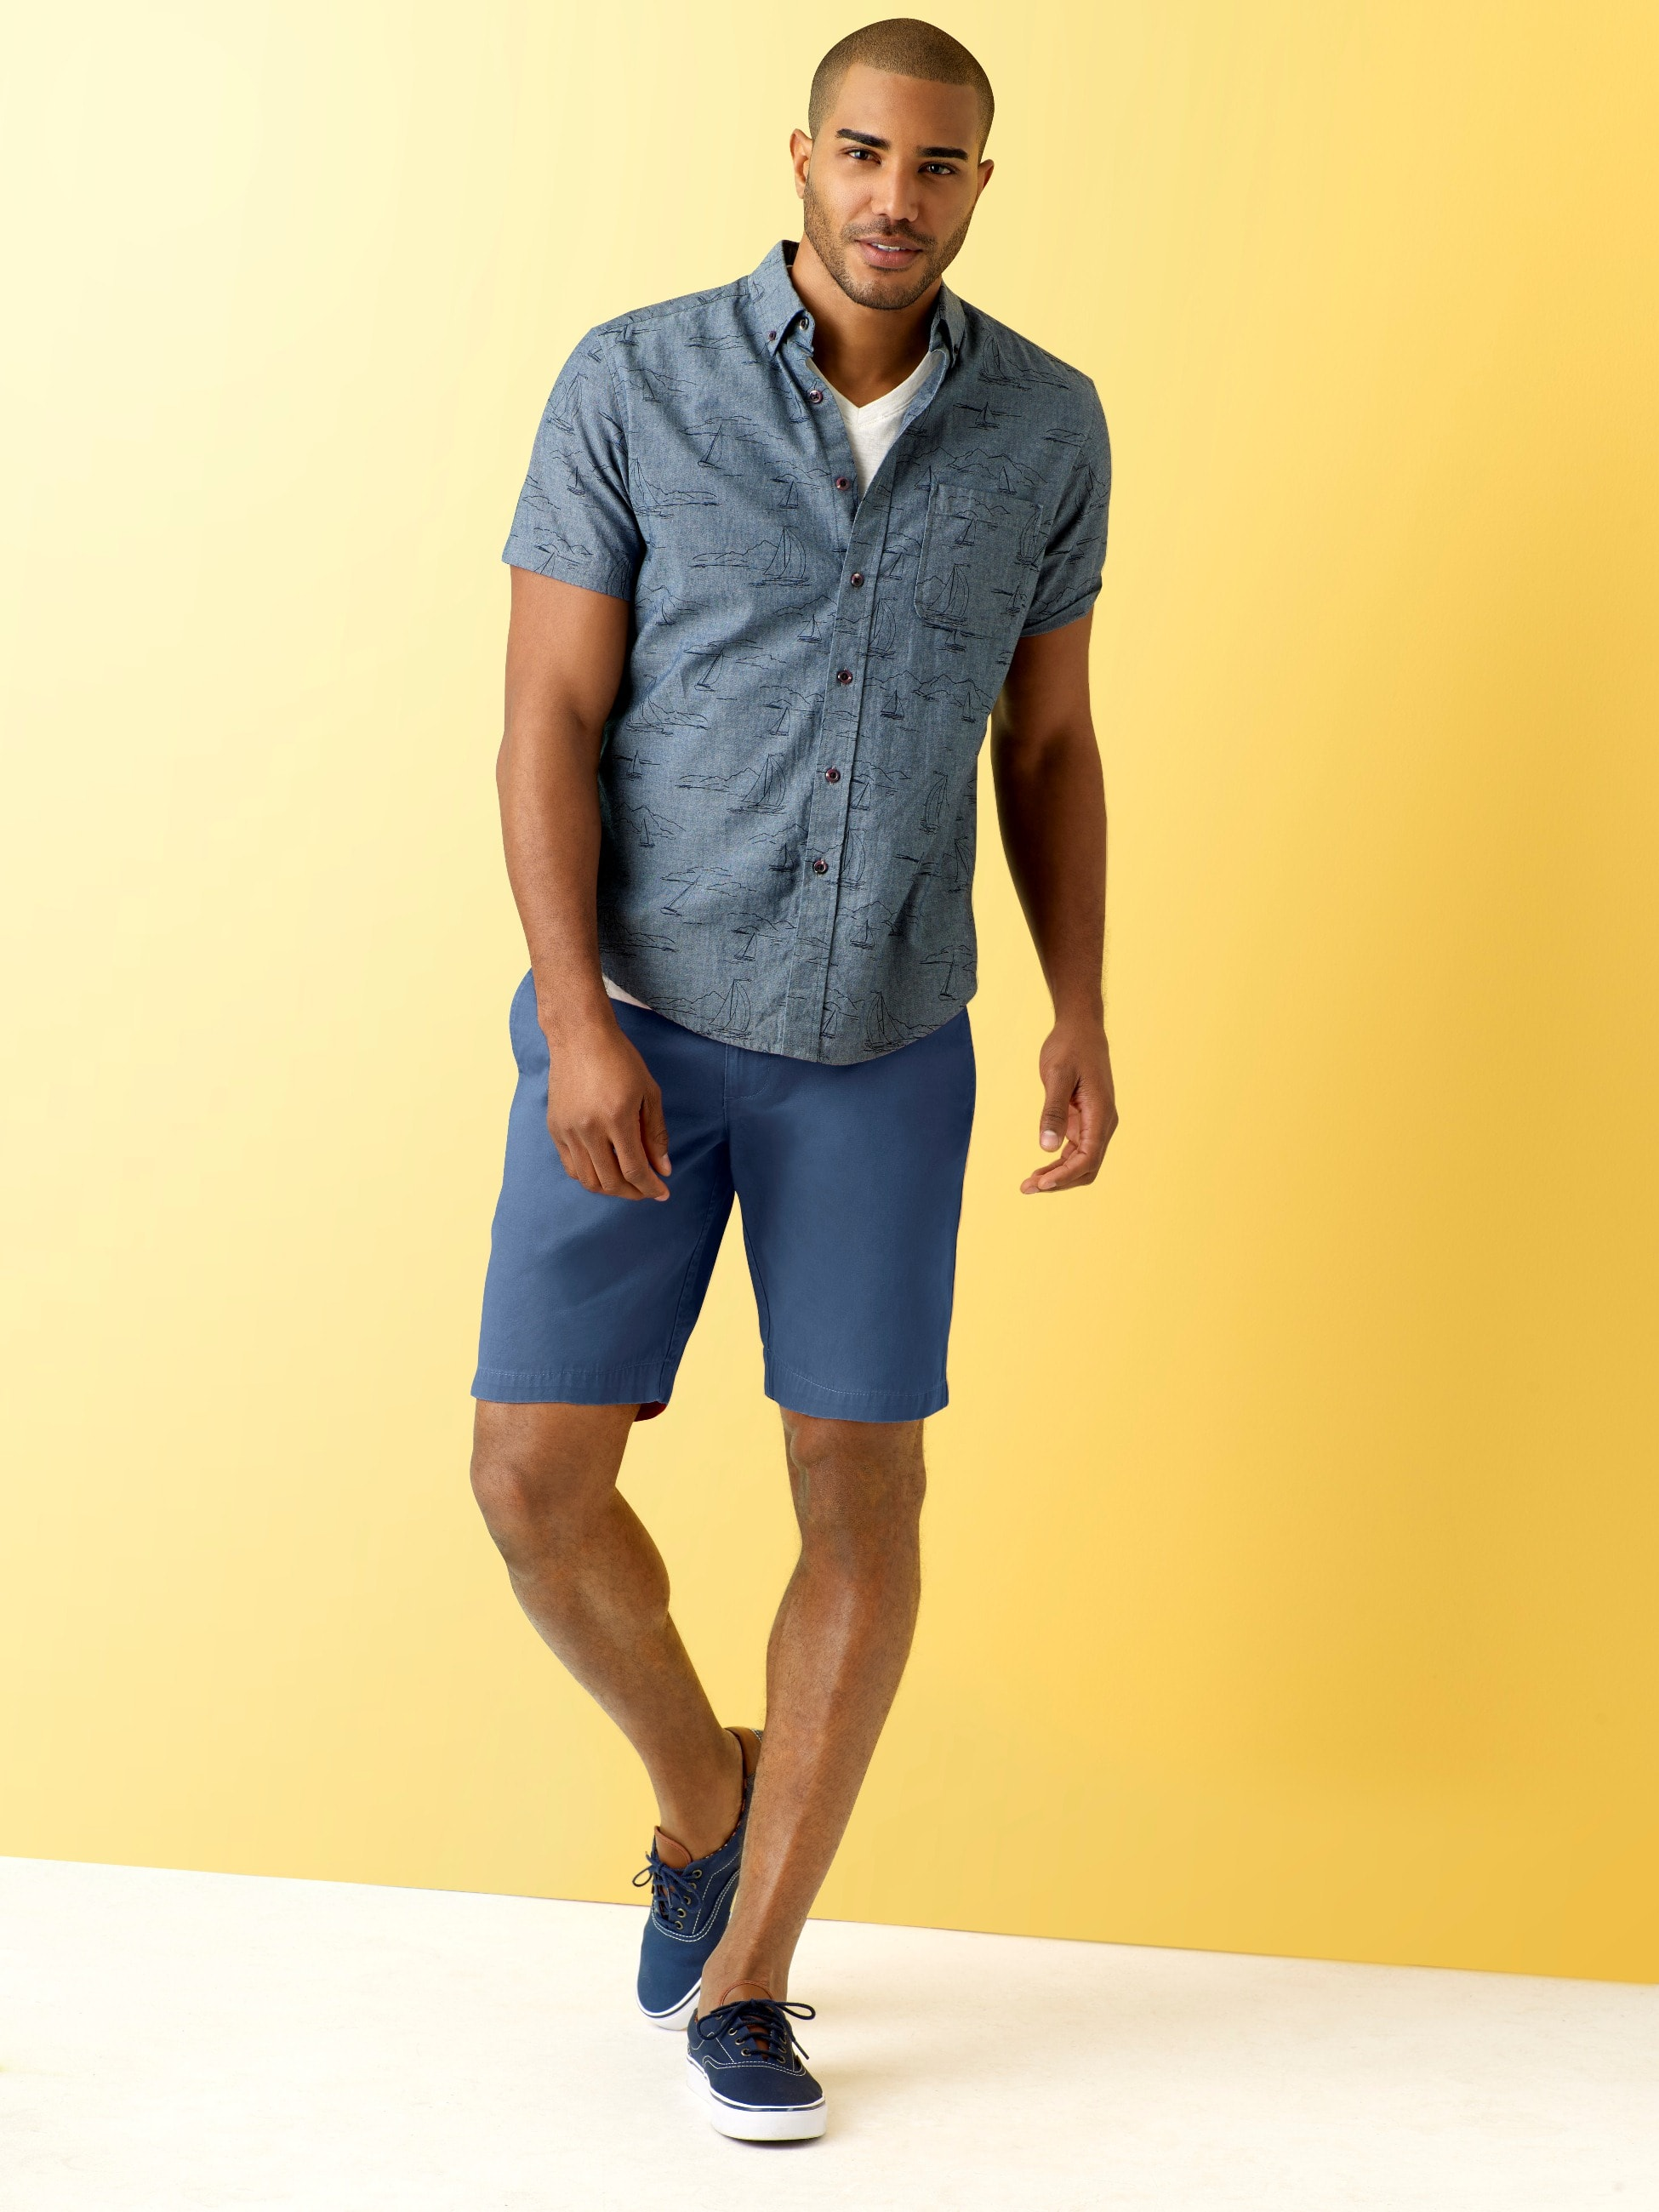 Simply Styled Men's Cotton Lived-In Flat Front Shorts: $3.82 (YMMV) w/store pick-up ~ Sears